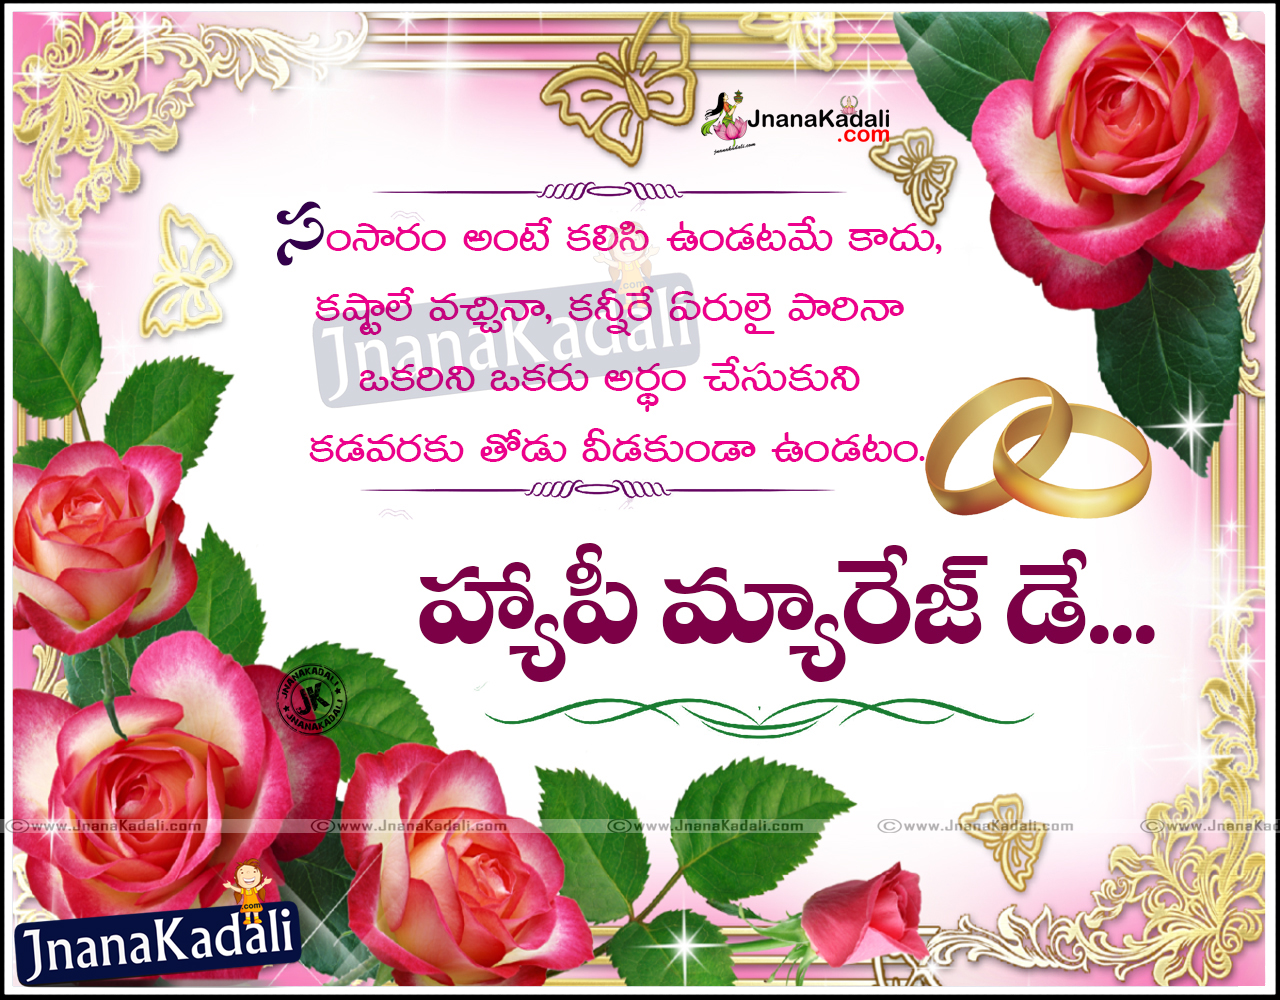 Greeting words for wedding anniversary image collections greeting wedding greetings in urdu images greeting card examples birthday wishes for wife in telugu happy marriage kristyandbryce Image collections